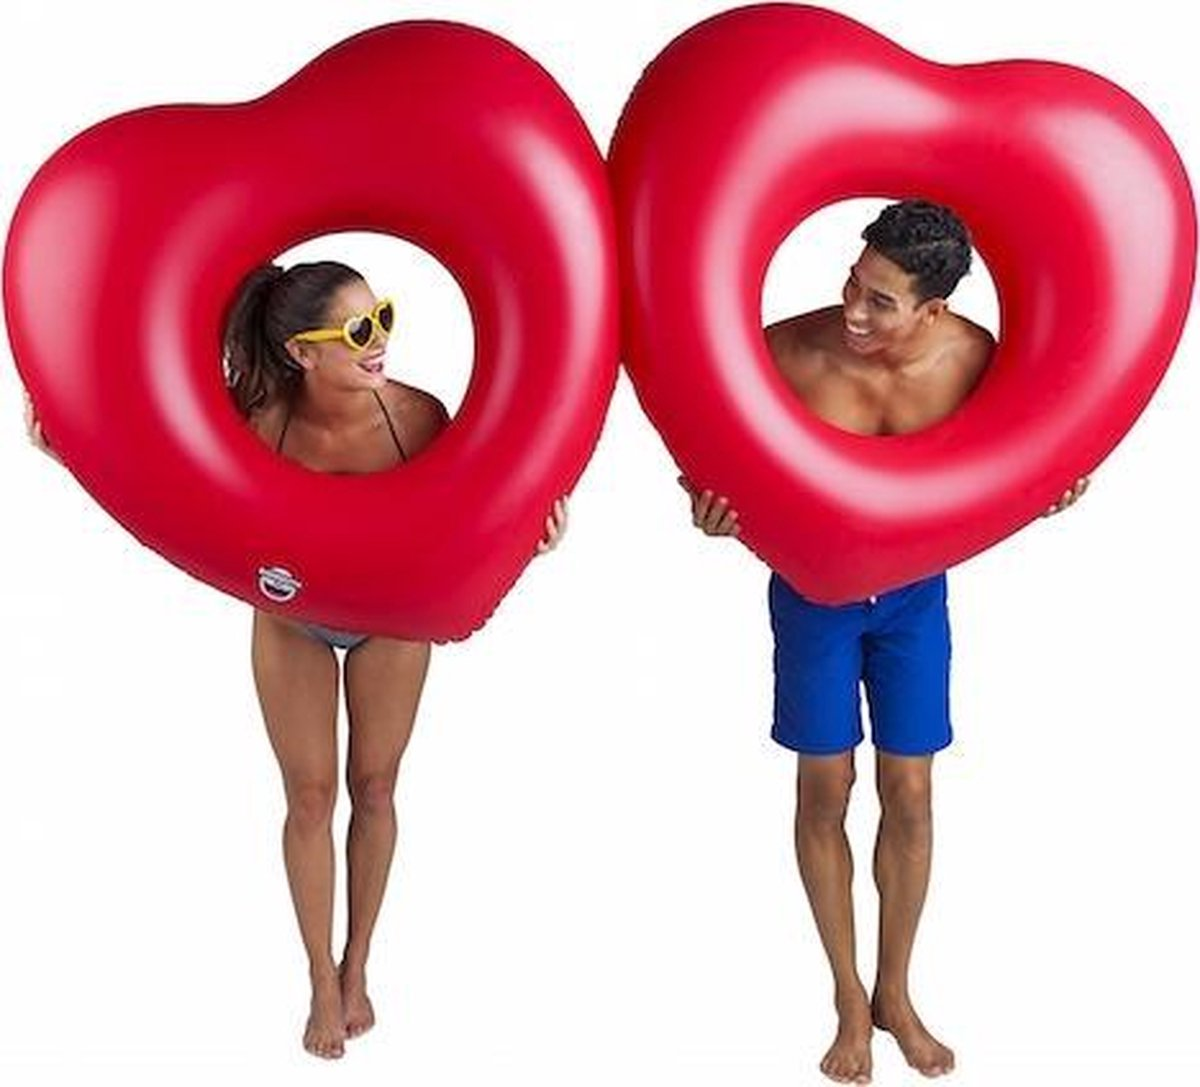 2 Harten Pool Float - Pool Float Two of Hearts - Big Mouth grote opblaas zwemband - 180 cm.